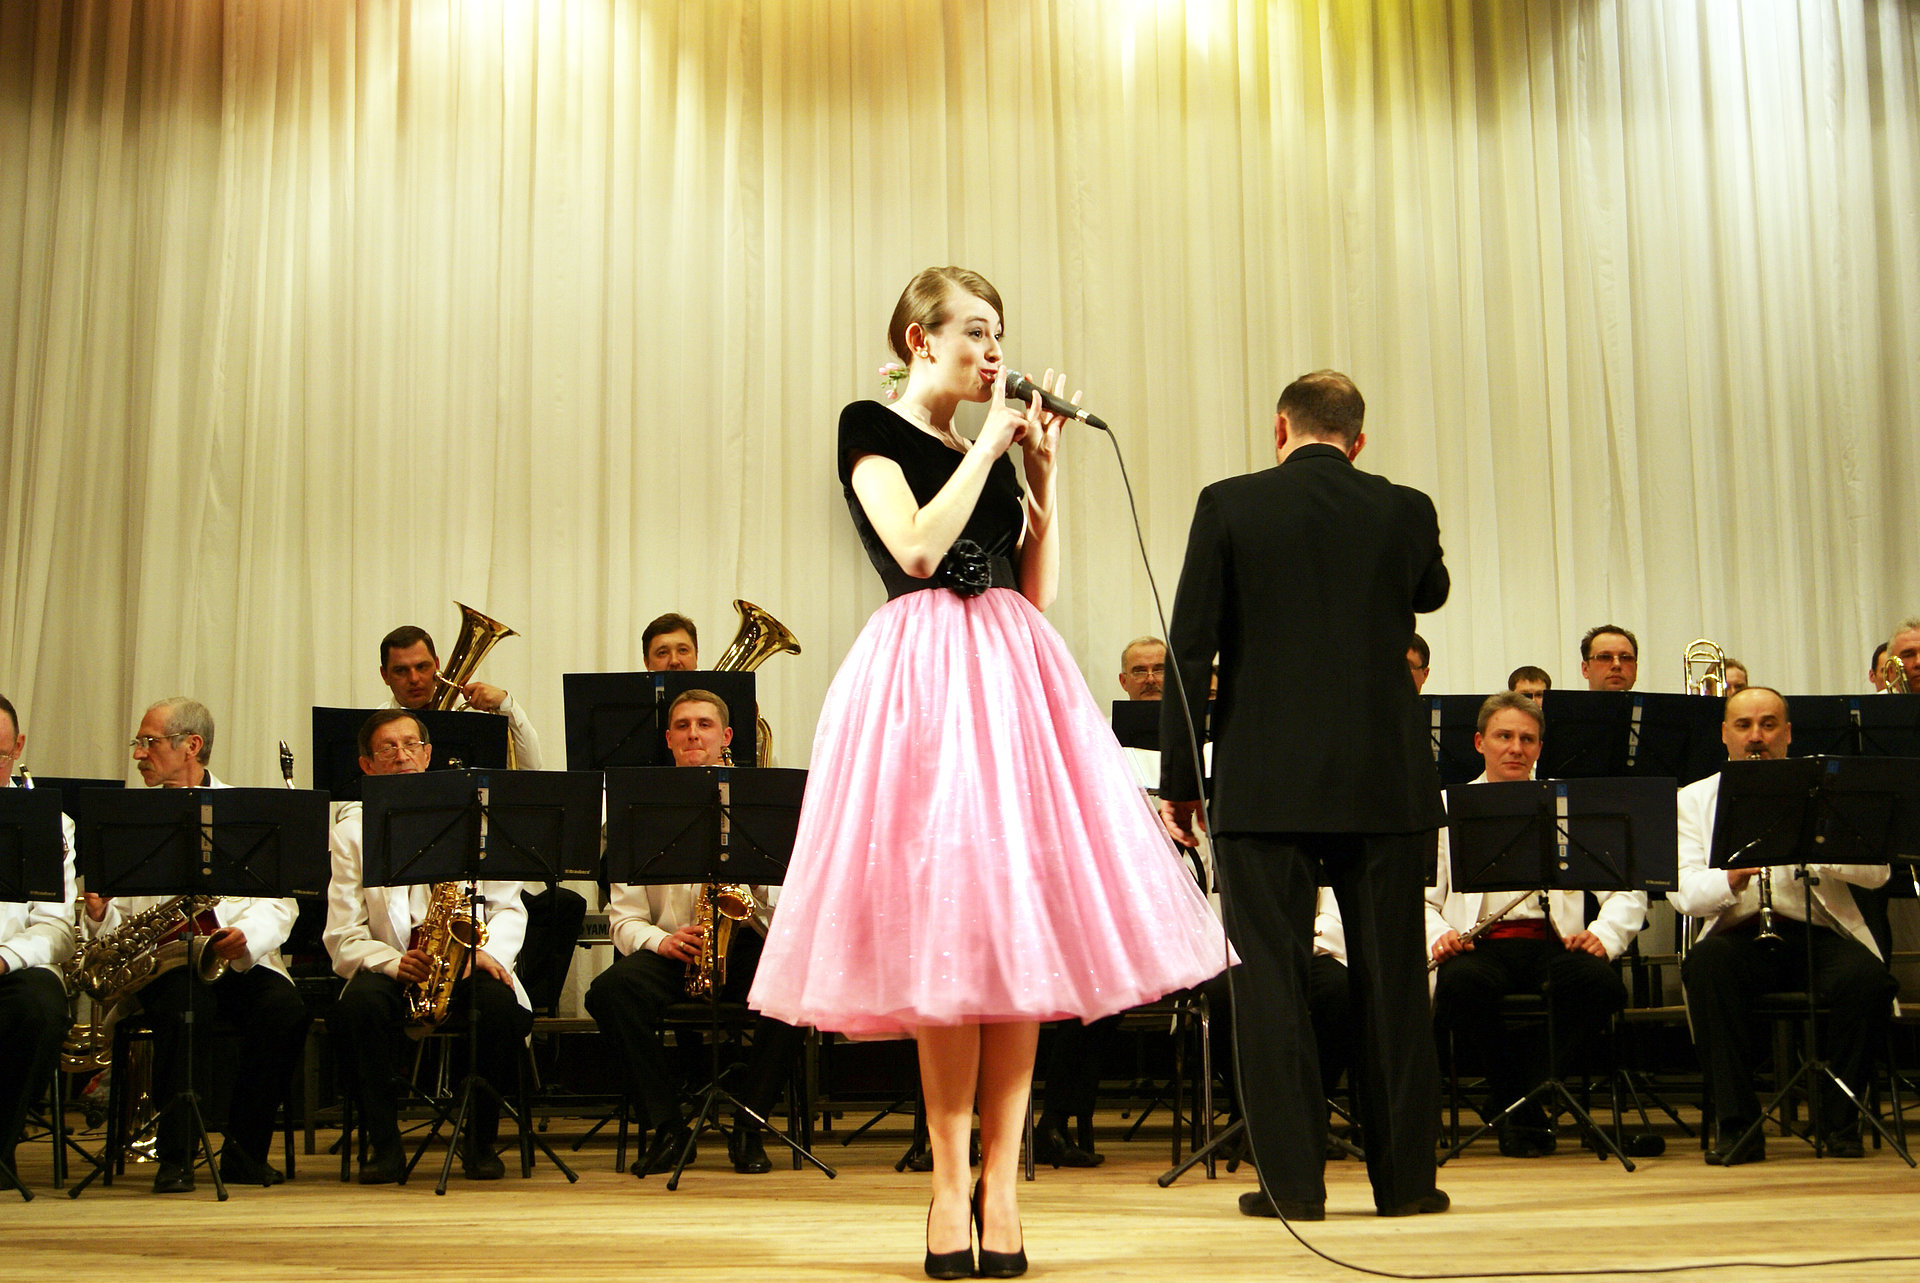 Singing with Governor's Orchestra